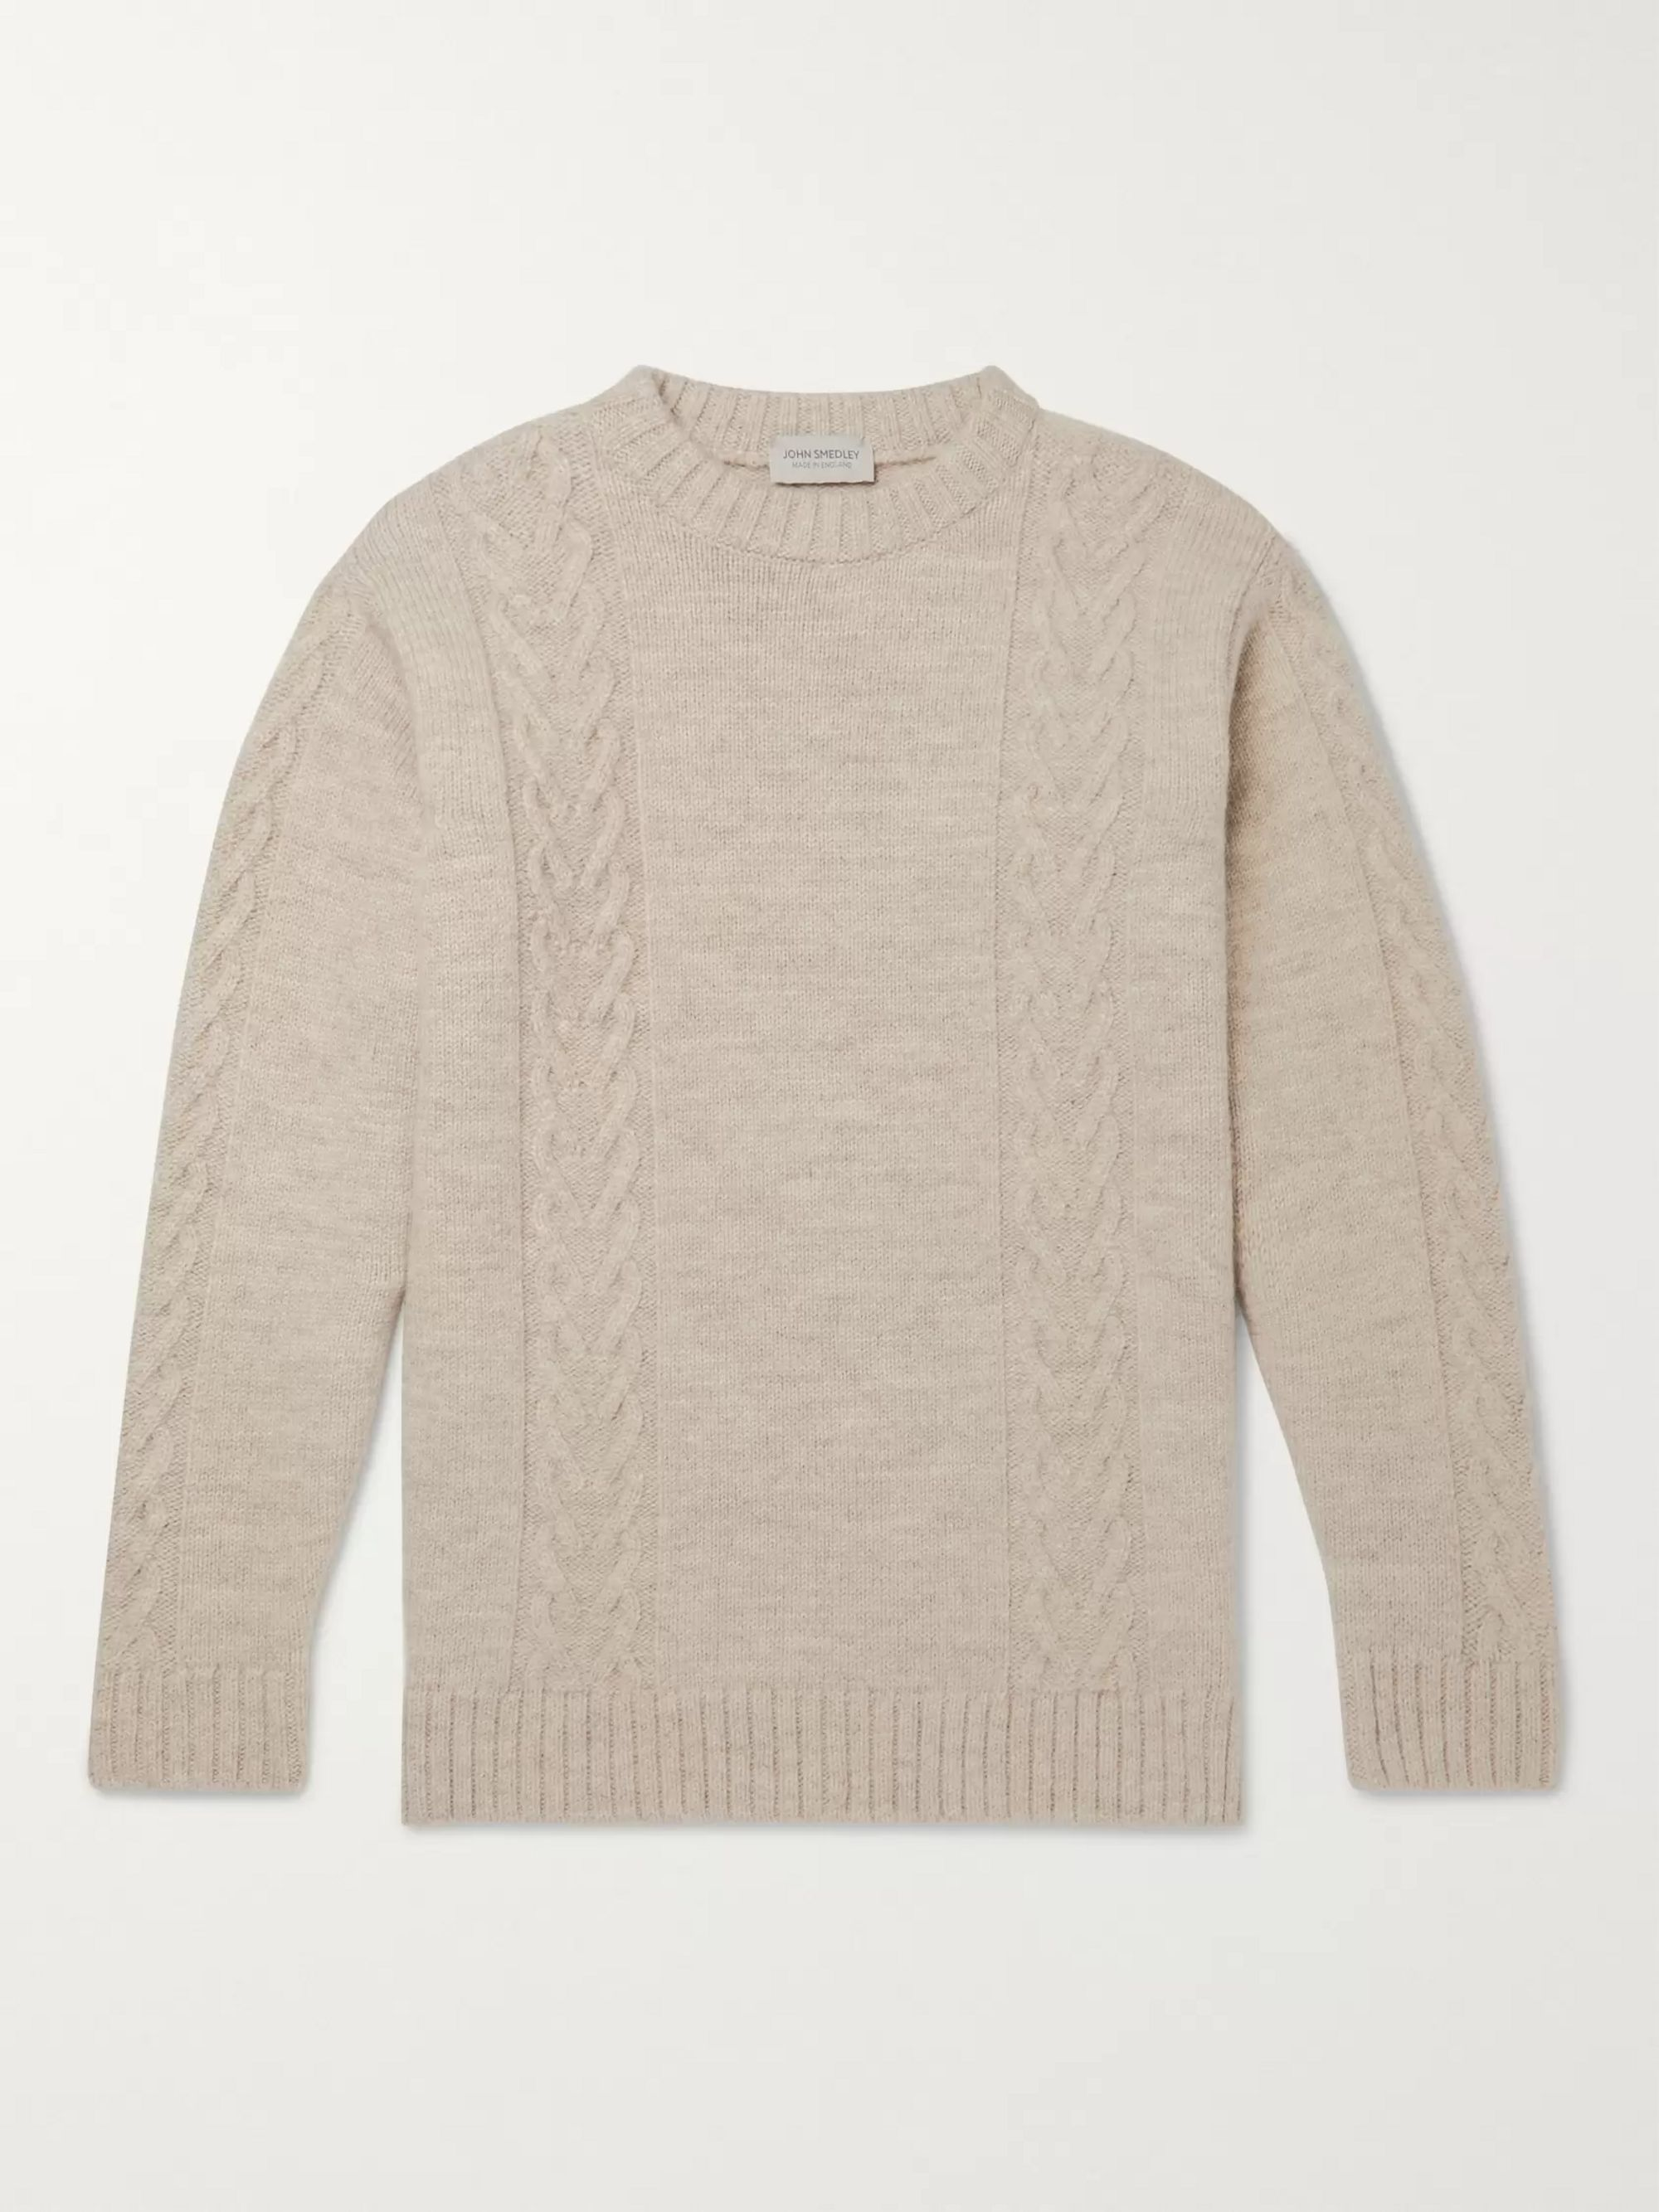 John Smedley Oscar Mélange Cable-Knit Wool Sweater